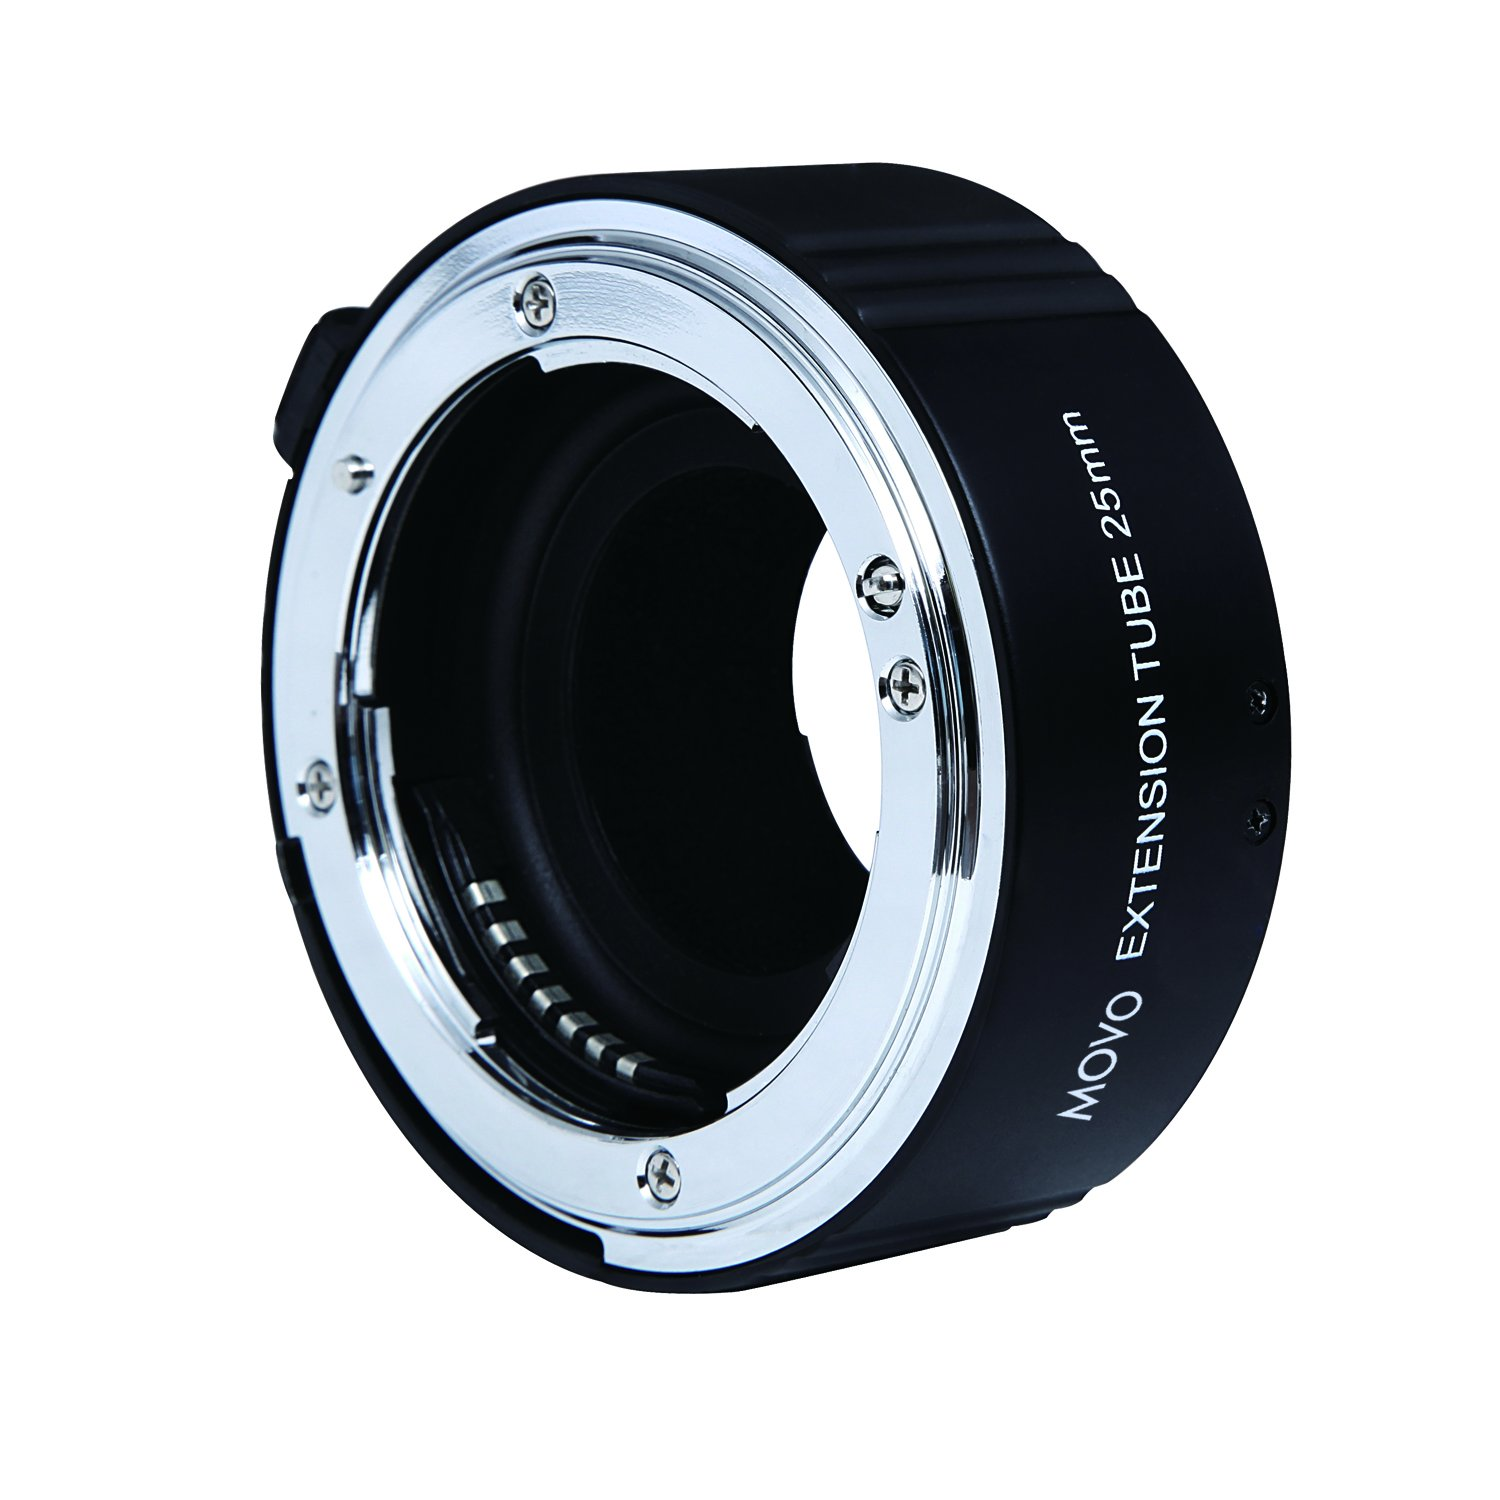 Movo Photo AF 25mm Macro Extension Tube for Nikon DSLR Camera (Metal Mount) by Movo